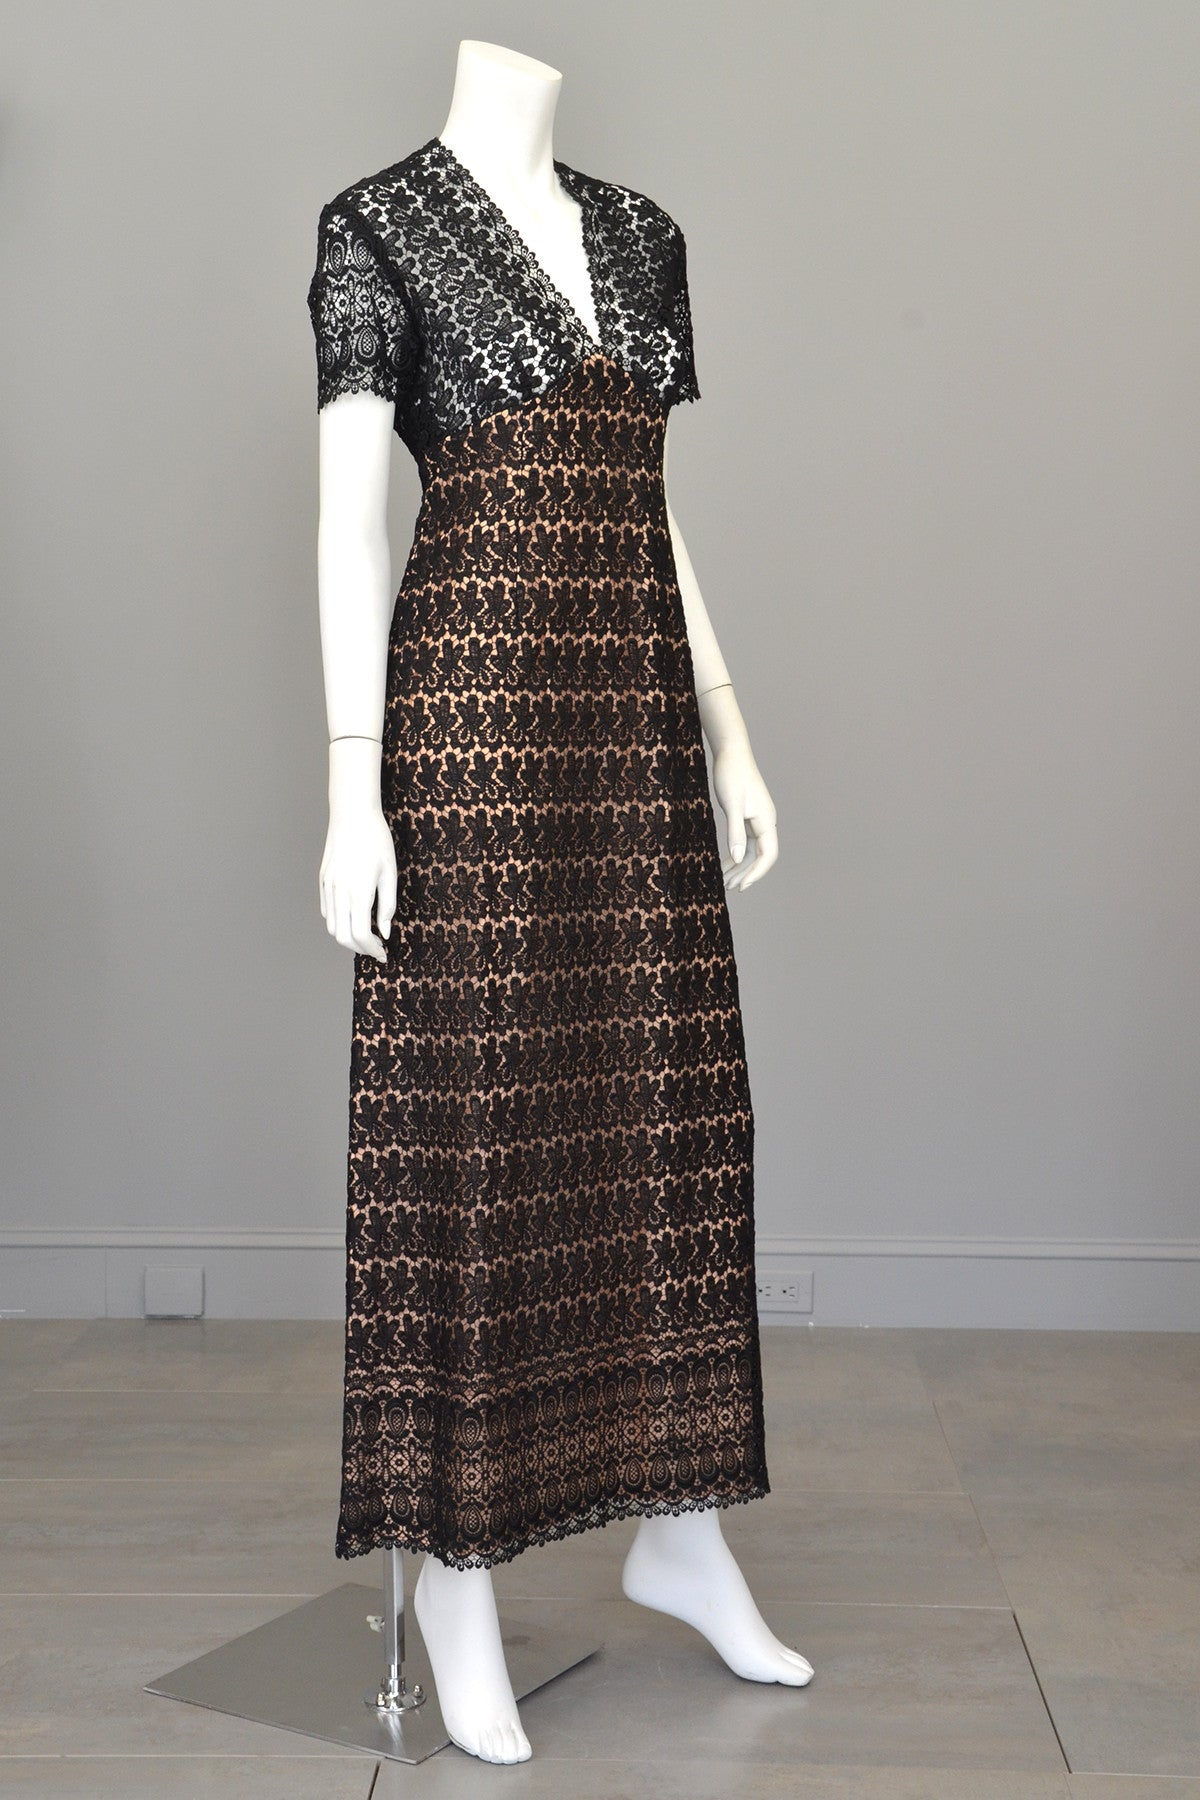 1960s 70s Black Illusion Lace Vintage Babydoll Maxi Dress Gown with Keyhole Back